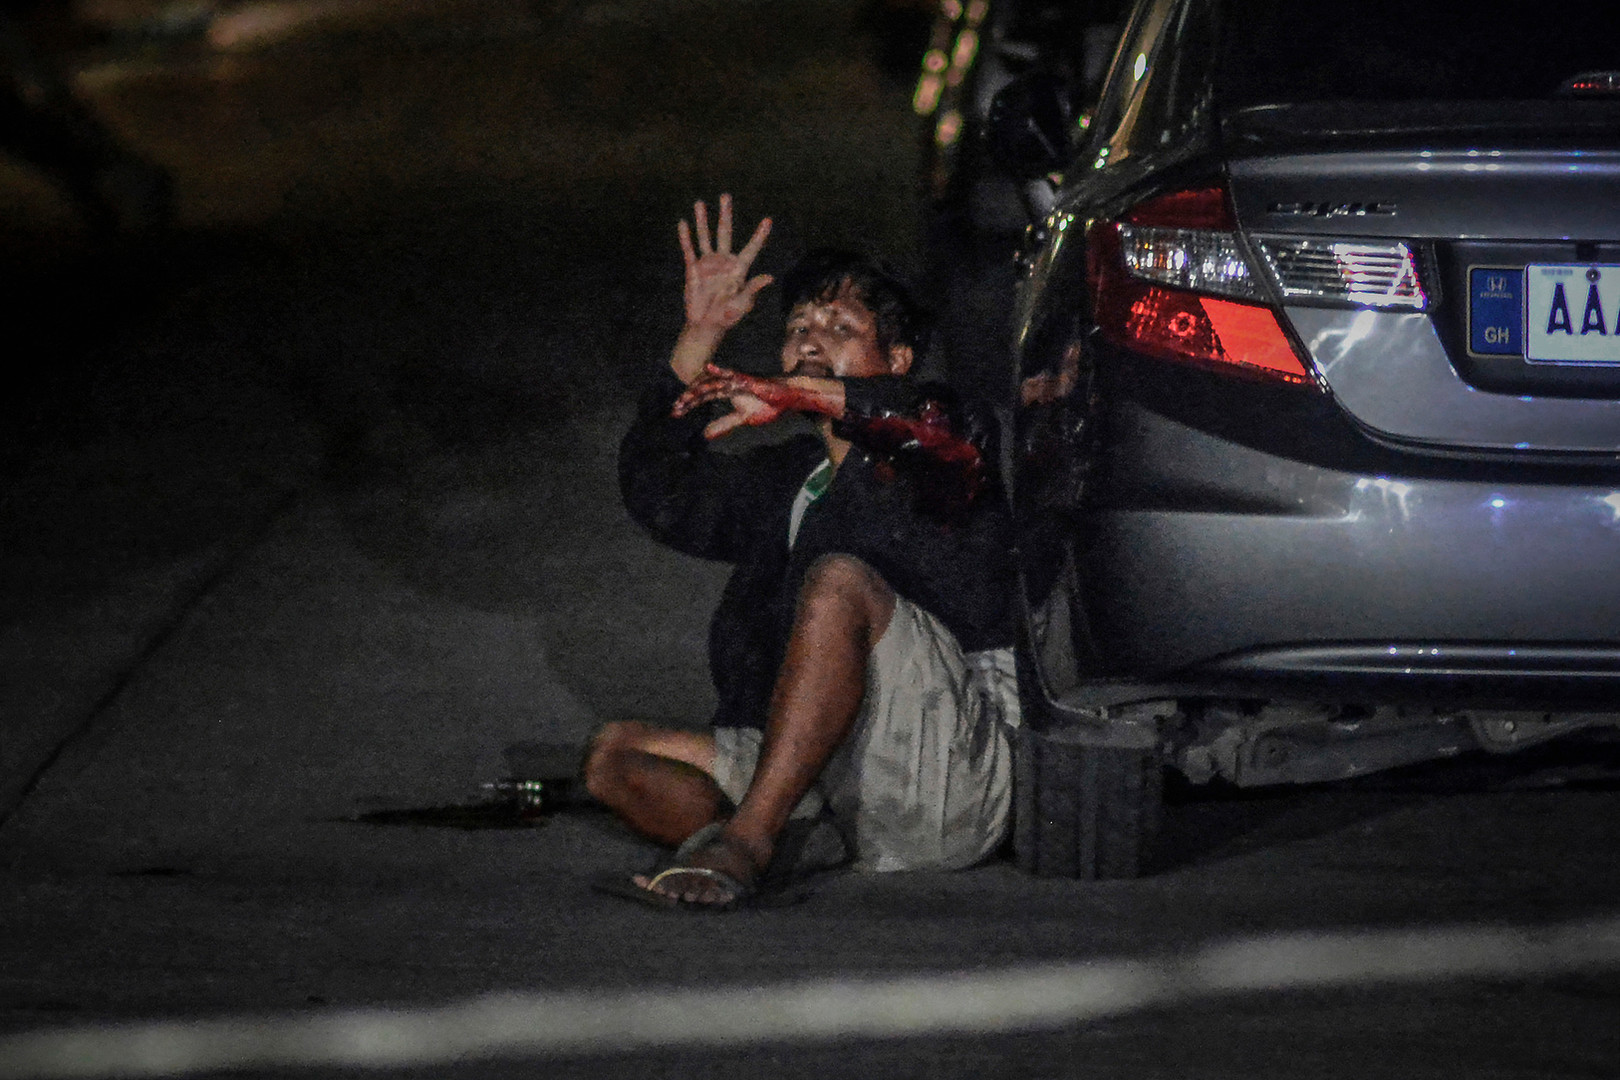 """An injured Francisco Santiago Jr. holds up his arms following what police say was a shootout during a drug buy-bust operation in Manila, Philippines, September 13, 2016. Earlier on police claimed he was killed along with another companion, but later was found out to be only injured after Santiago claimed he """"played dead"""" after being shot by a plain-clothes police officer."""